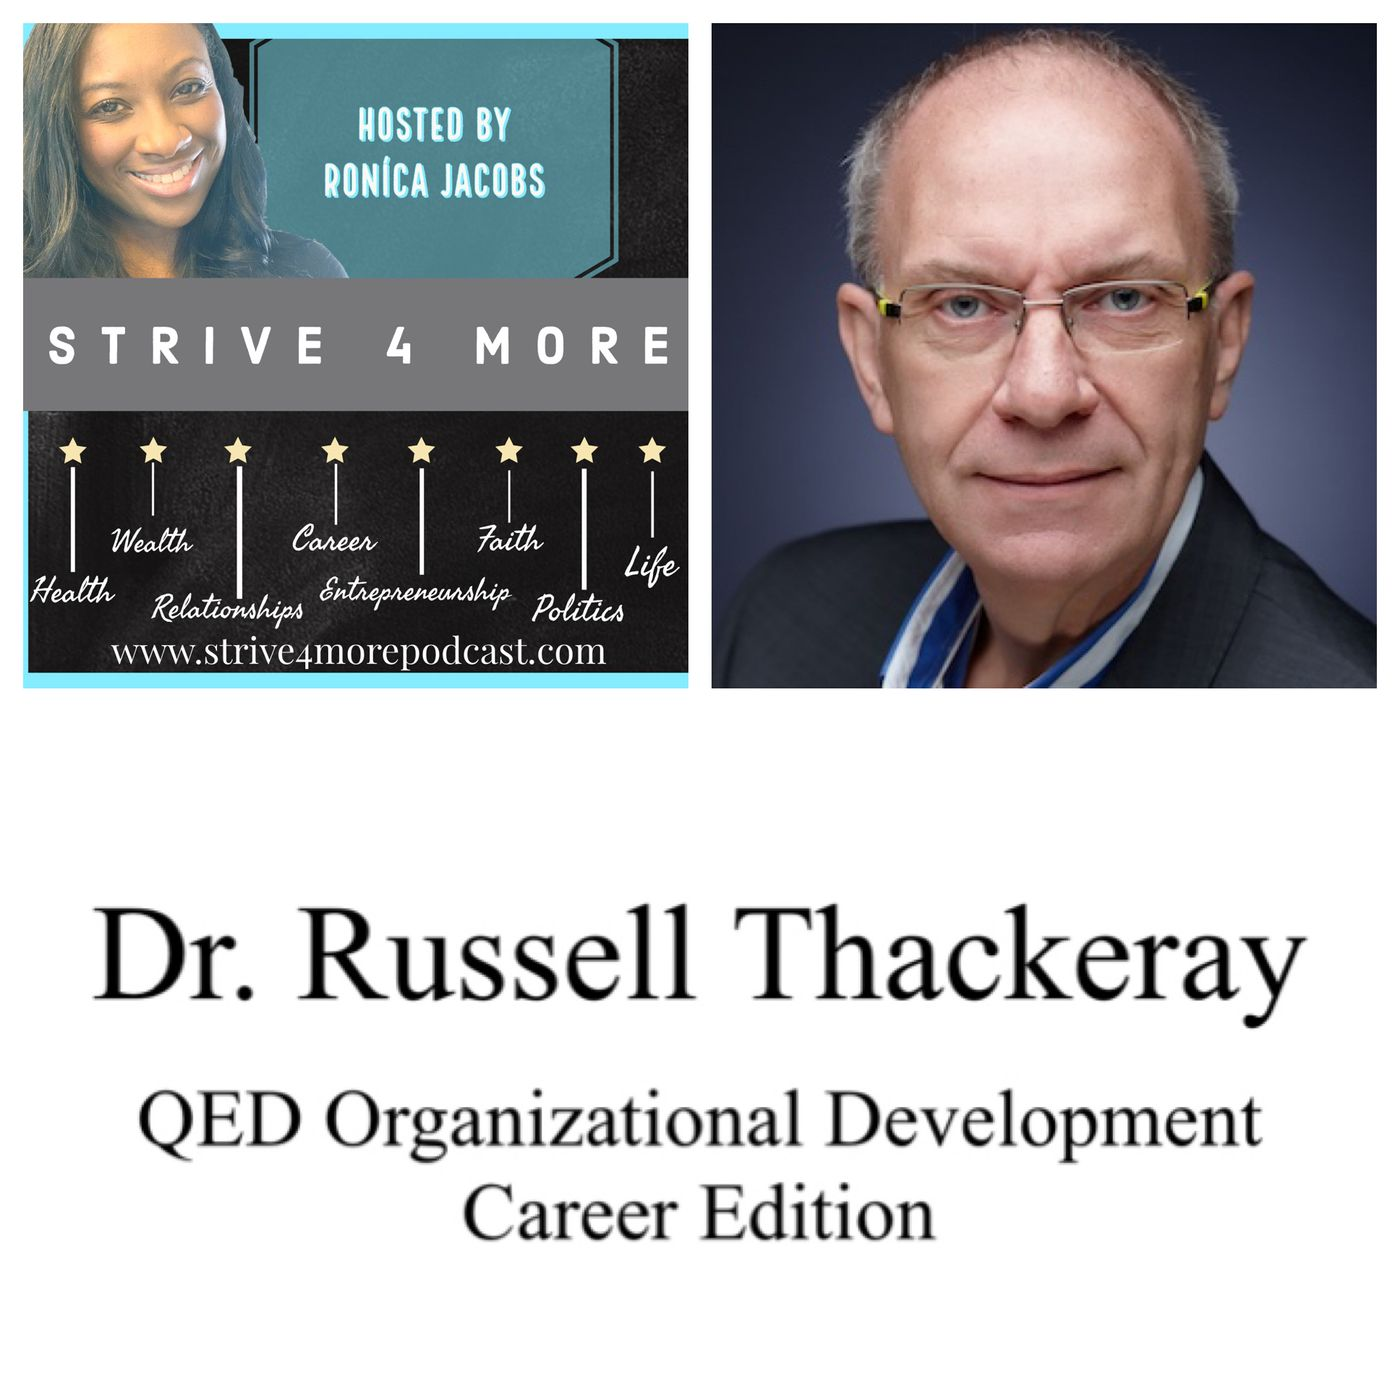 Leaders Get The Best From People Through Ingenuity w/ Dr. Russell Thackeray